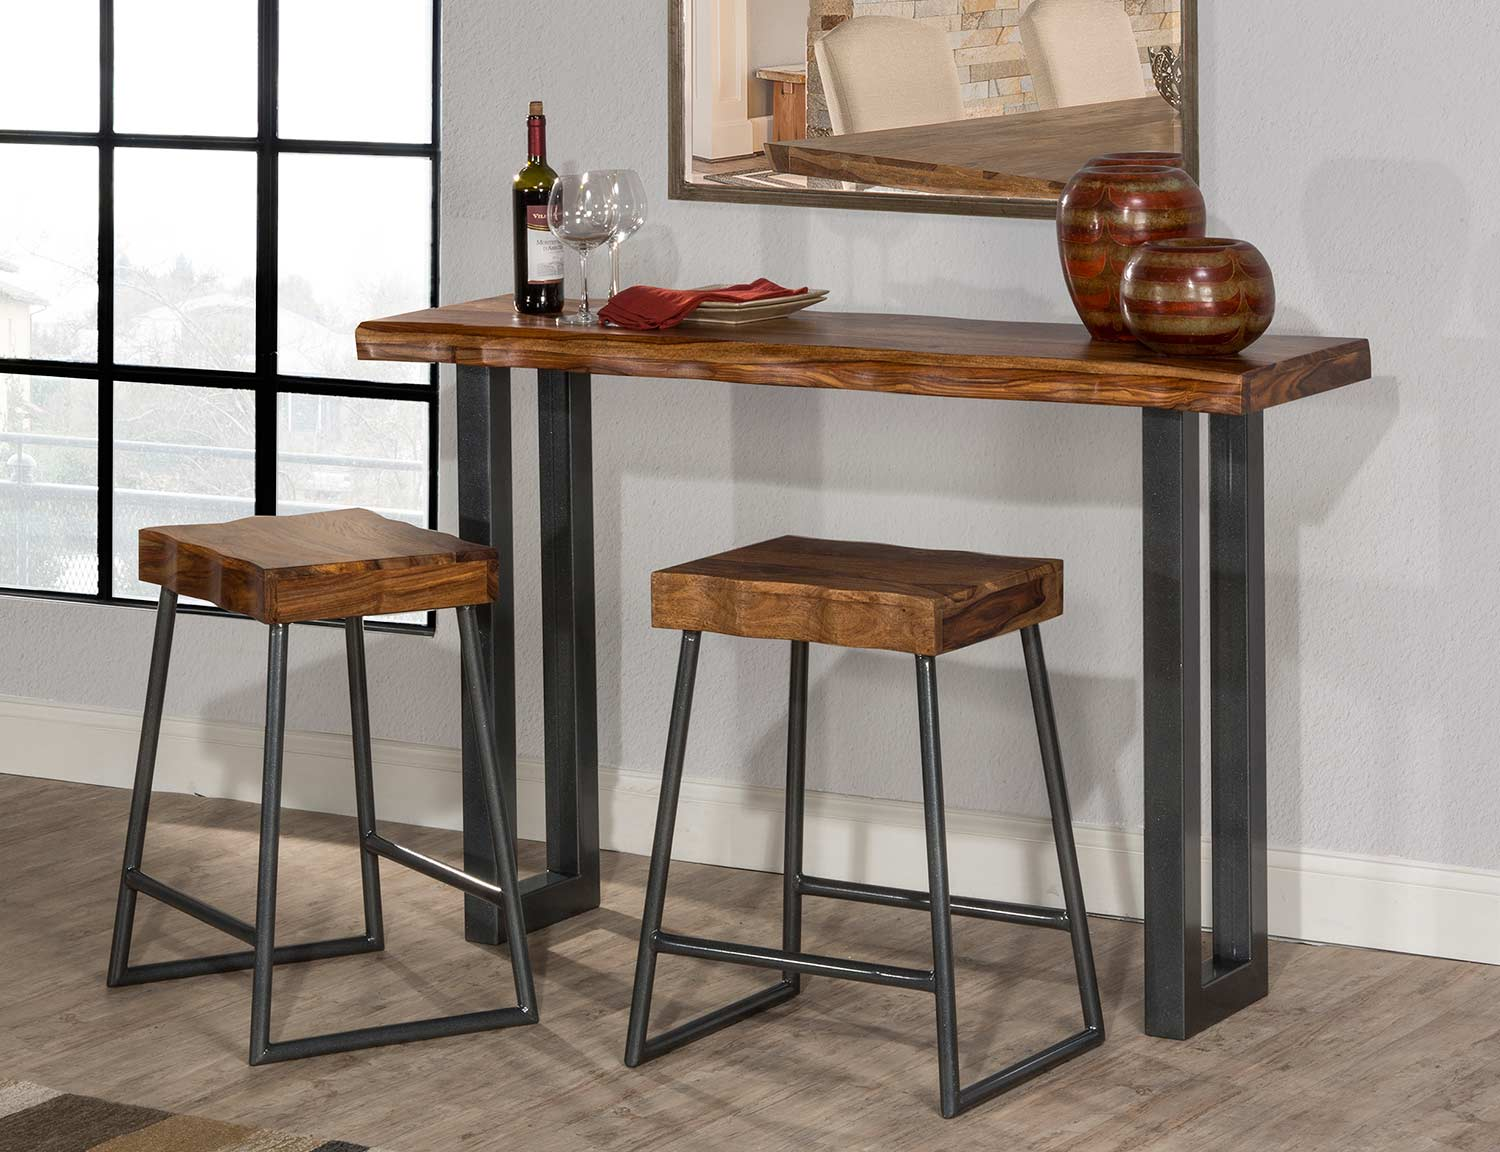 Hillsdale Emerson Sofa Table with Two Non-Swivel Counter Stools - Gray Metallic